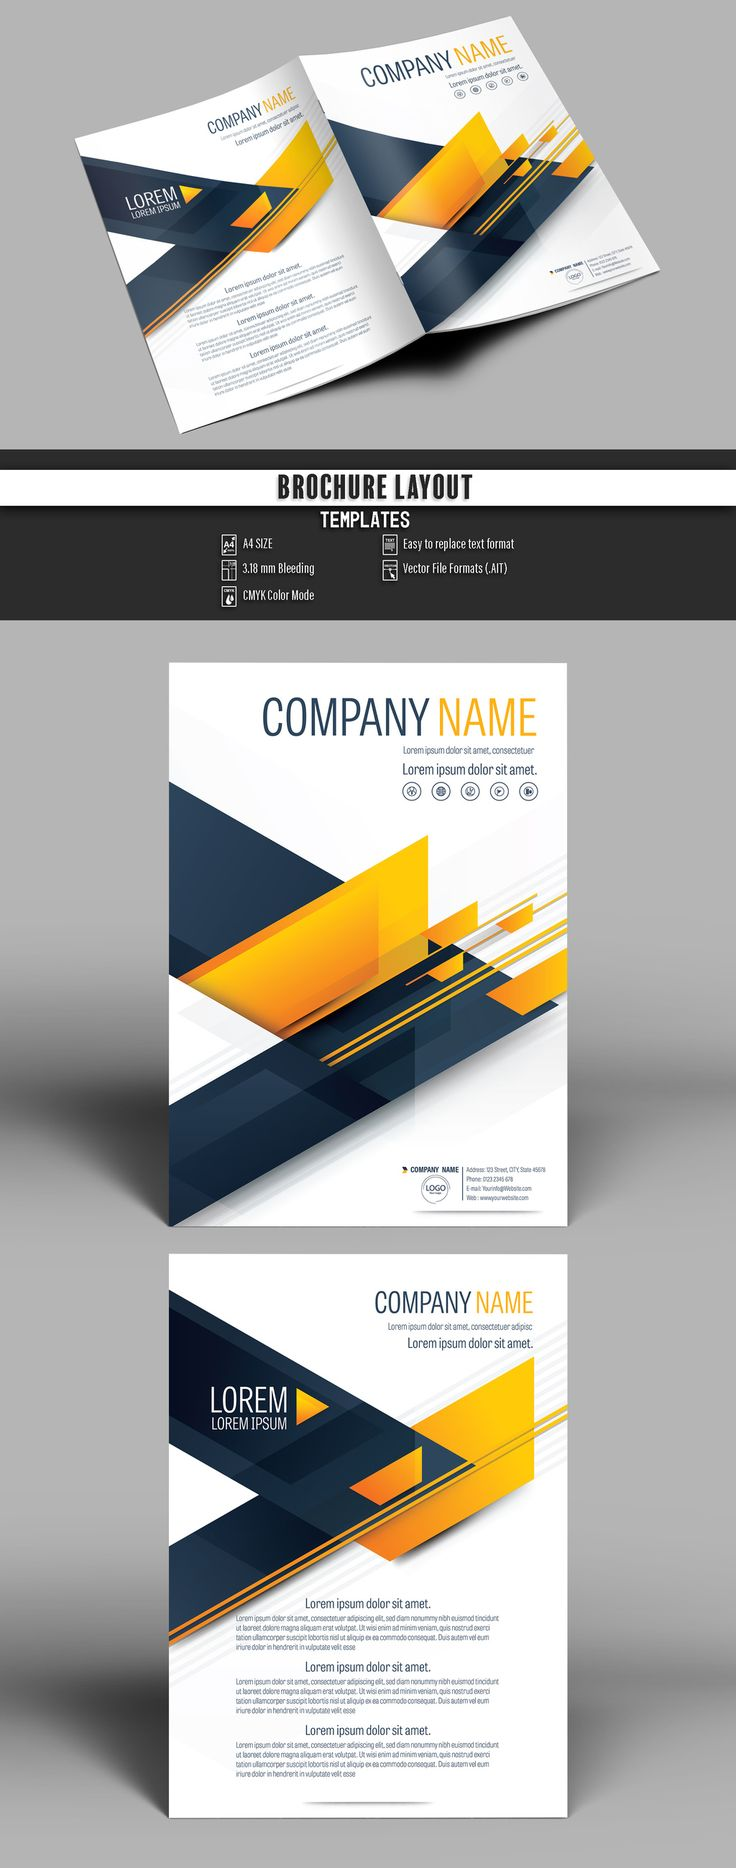 Brochure Cover Layout with Dark Blue and Orange Accents 1 - image   Adobe Stock #Brochure #Business #Proposal #Booklet #flyer #template Design layout   Brochure template   Brochure design template   Flyers   Template   Brochures   Flyer Background   Background design   Business Proposal   Proposal Design   Booklet   Professional   Professional - Proposal - Brochure - Template